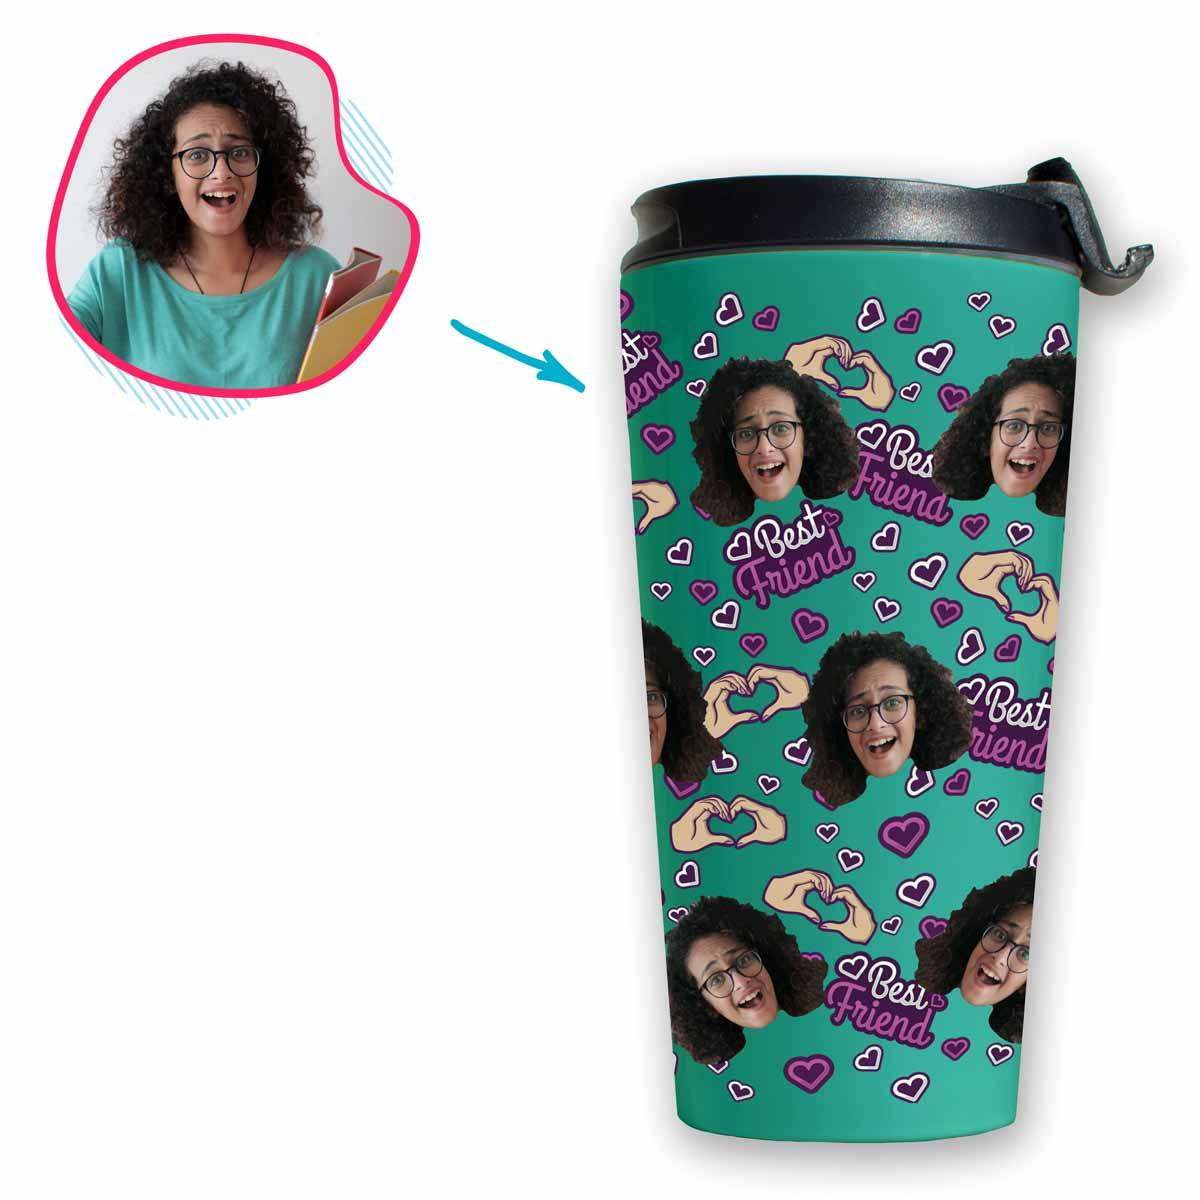 mint BFF for Her travel mug personalized with photo of face printed on it